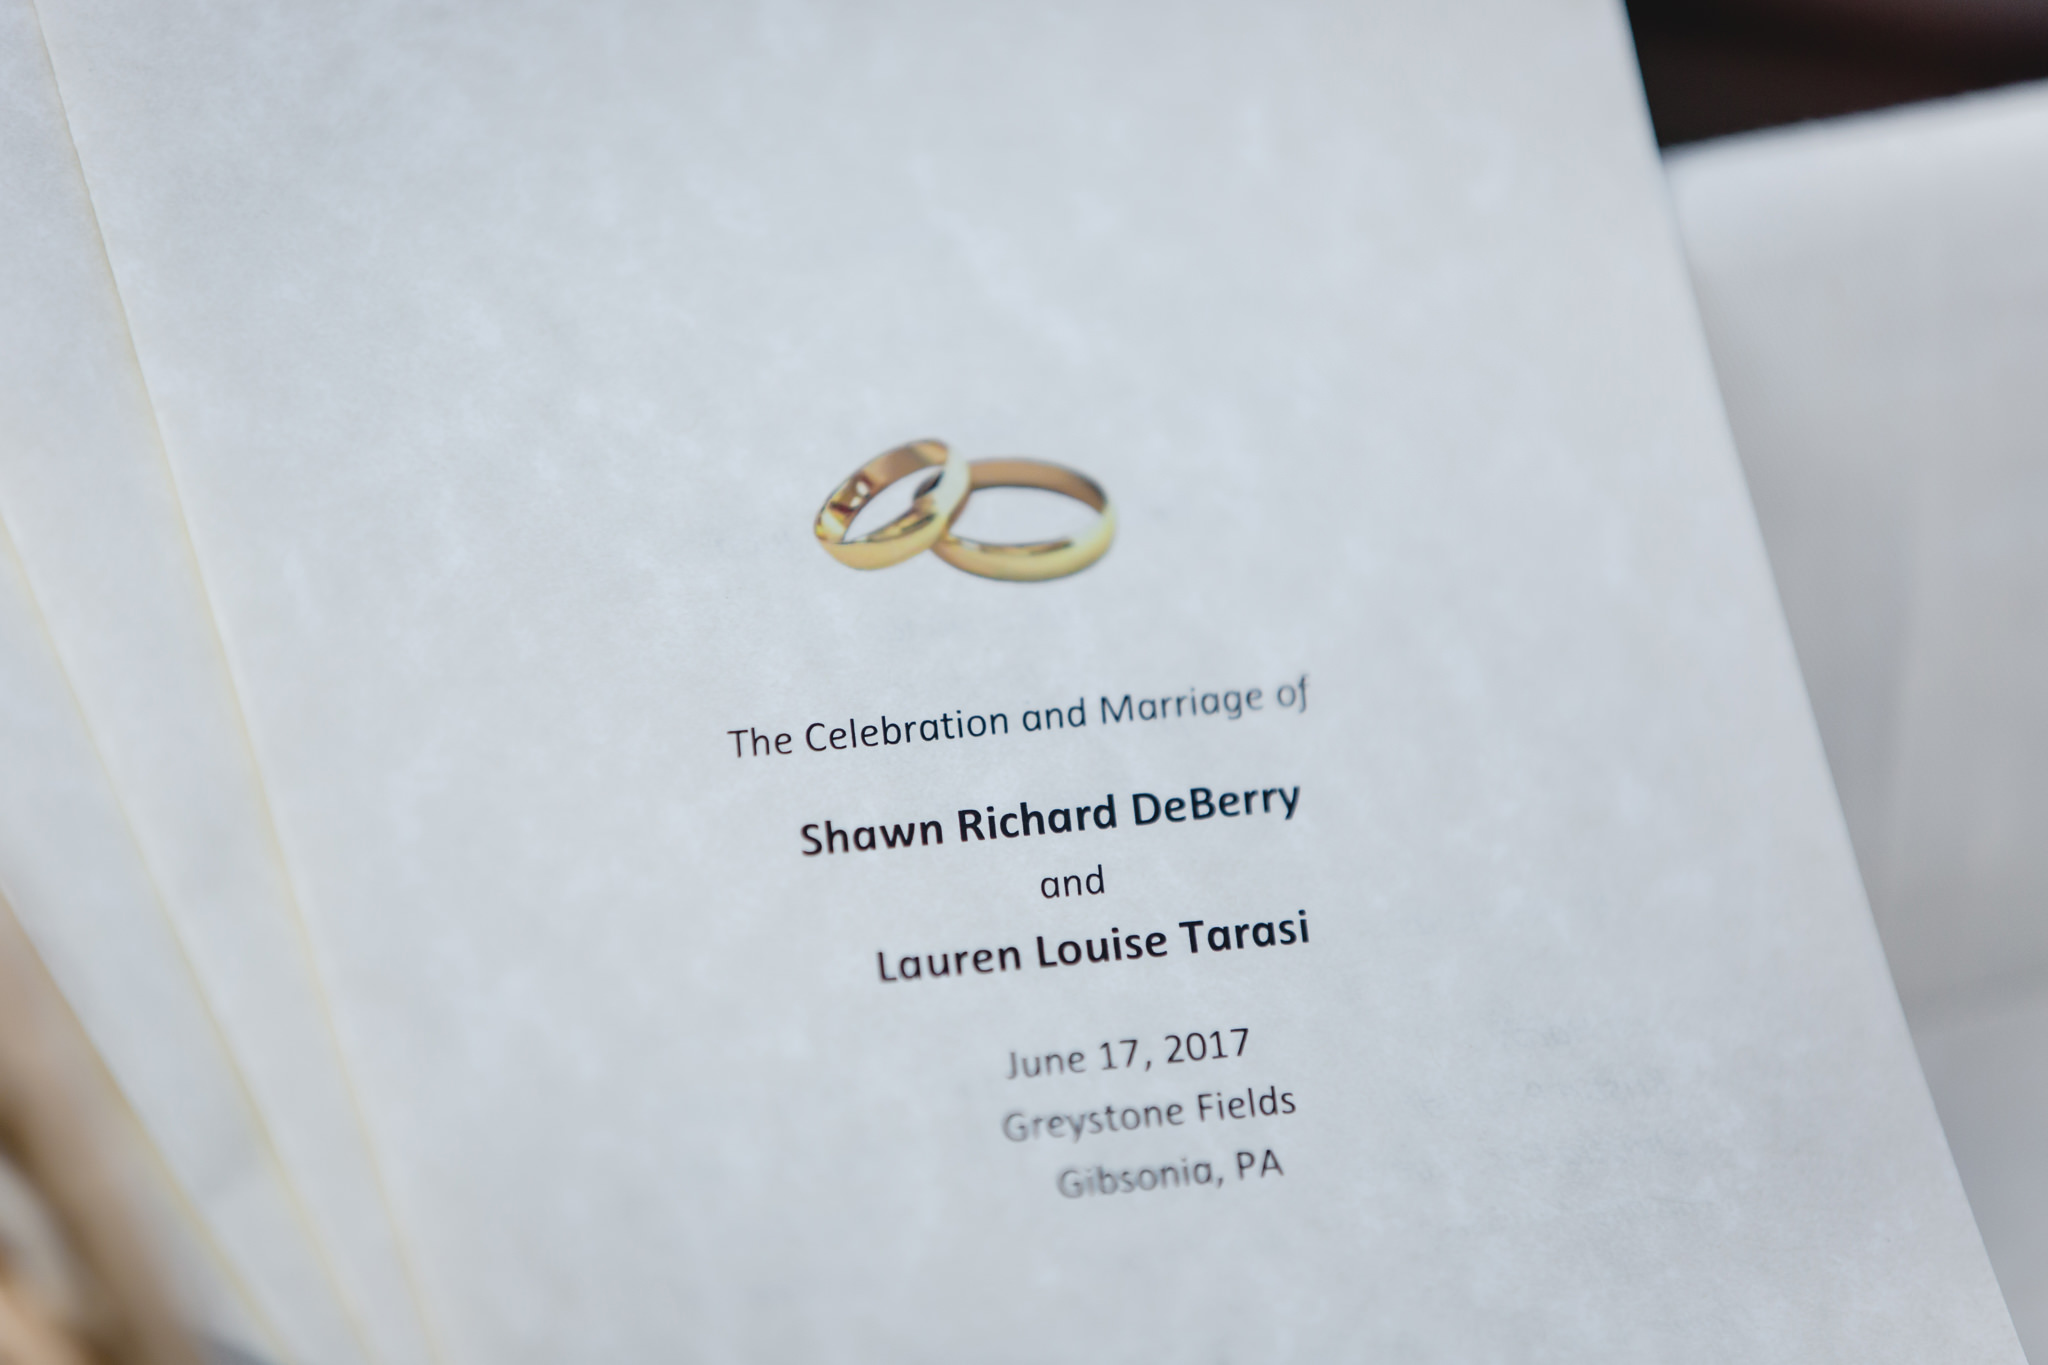 Wedding programs for a June wedding at Greystone Fields